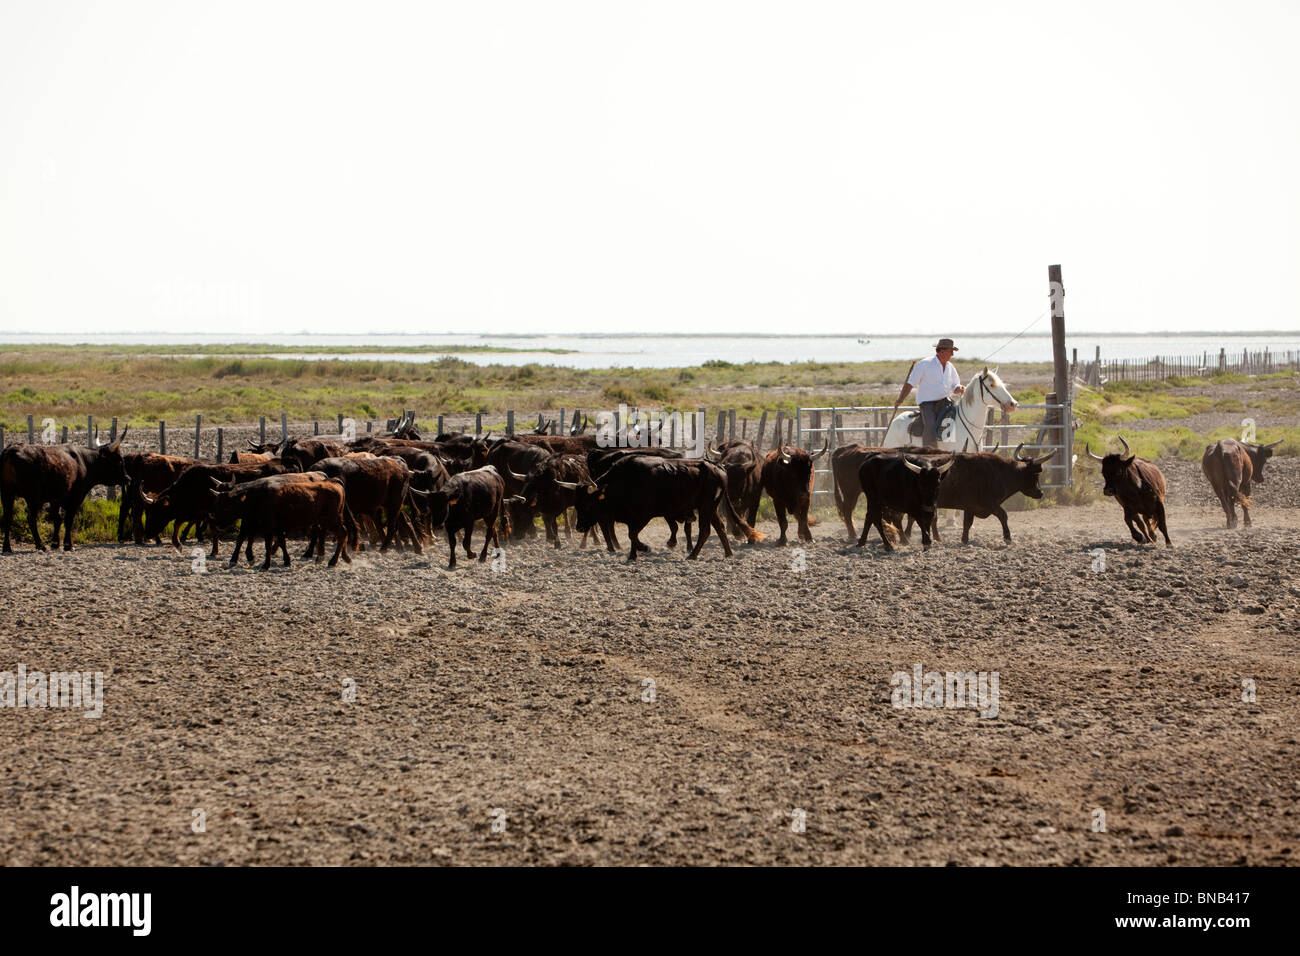 Gardian, a cowboy of the Camargue region, separating bulls from the herd for the next bullfighting - Stock Image